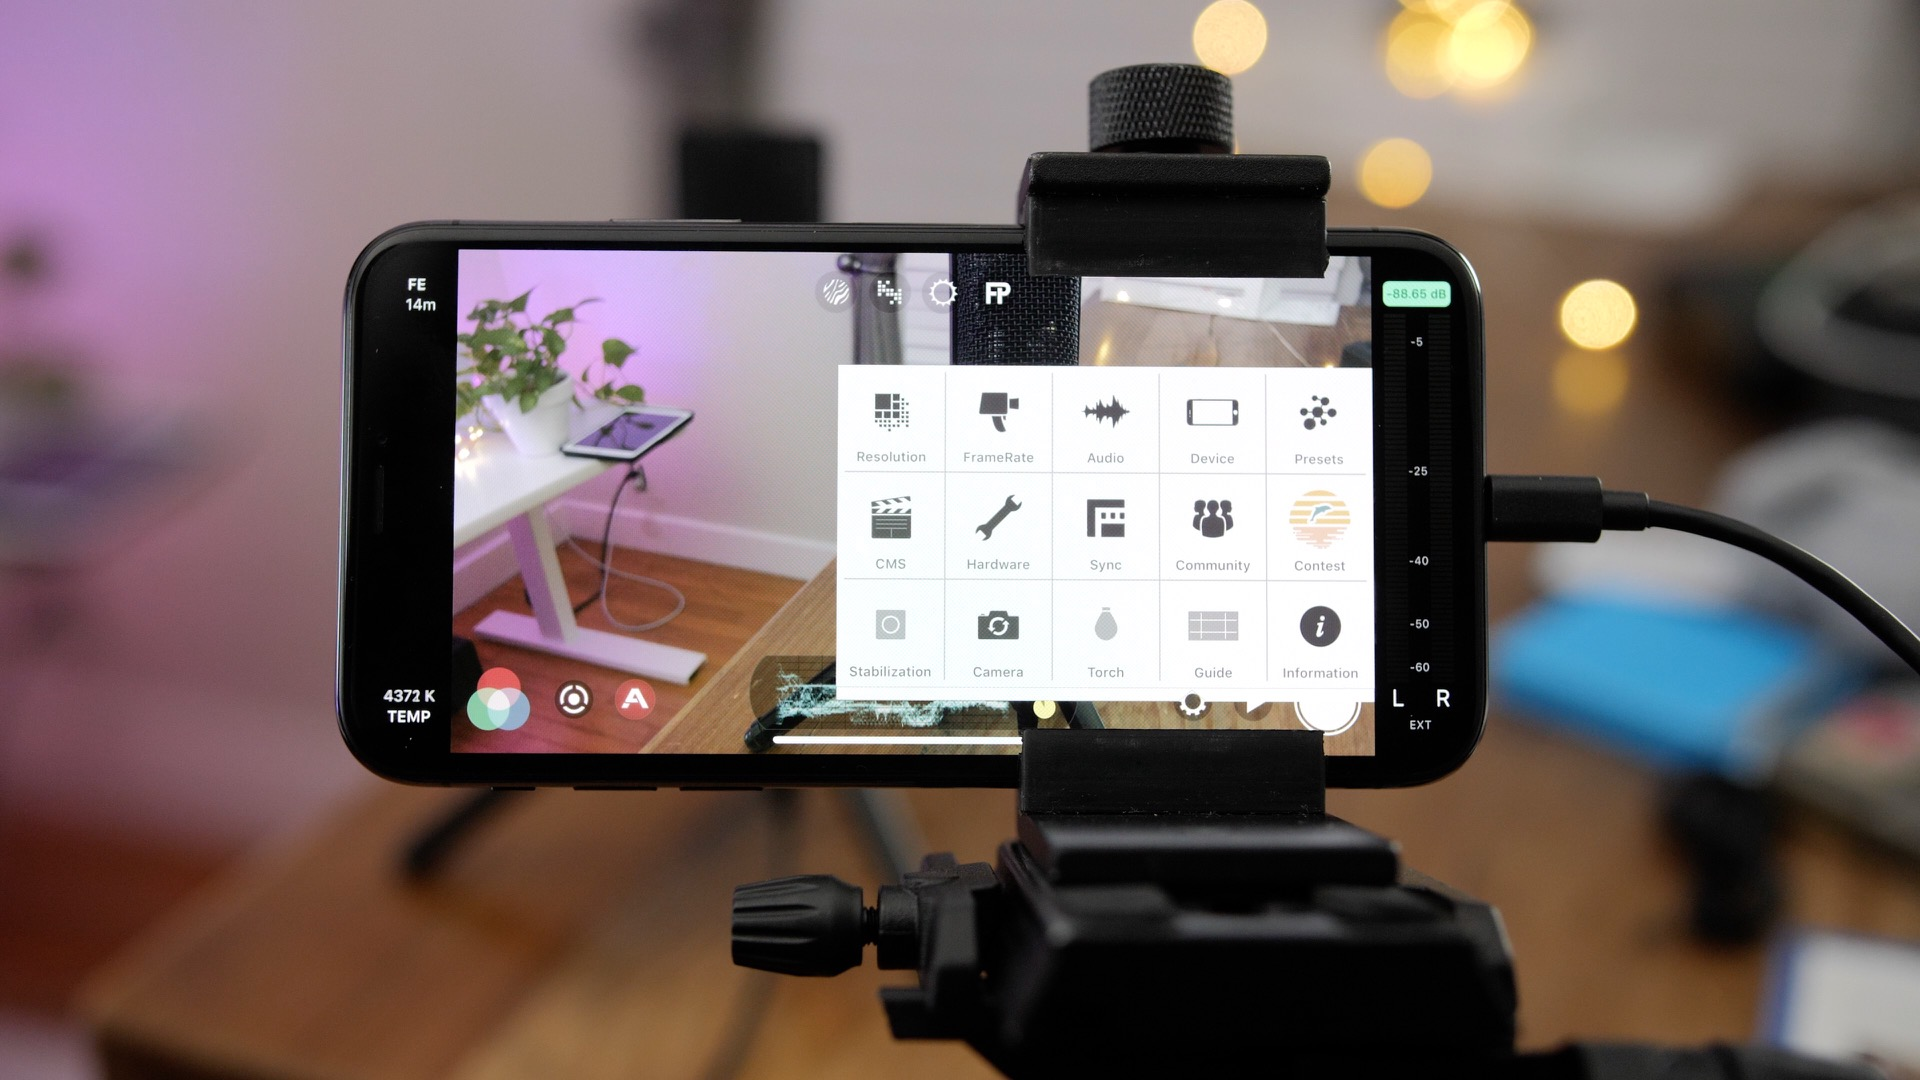 Friday 5: Filmic Pro - a must-have app for iPhone